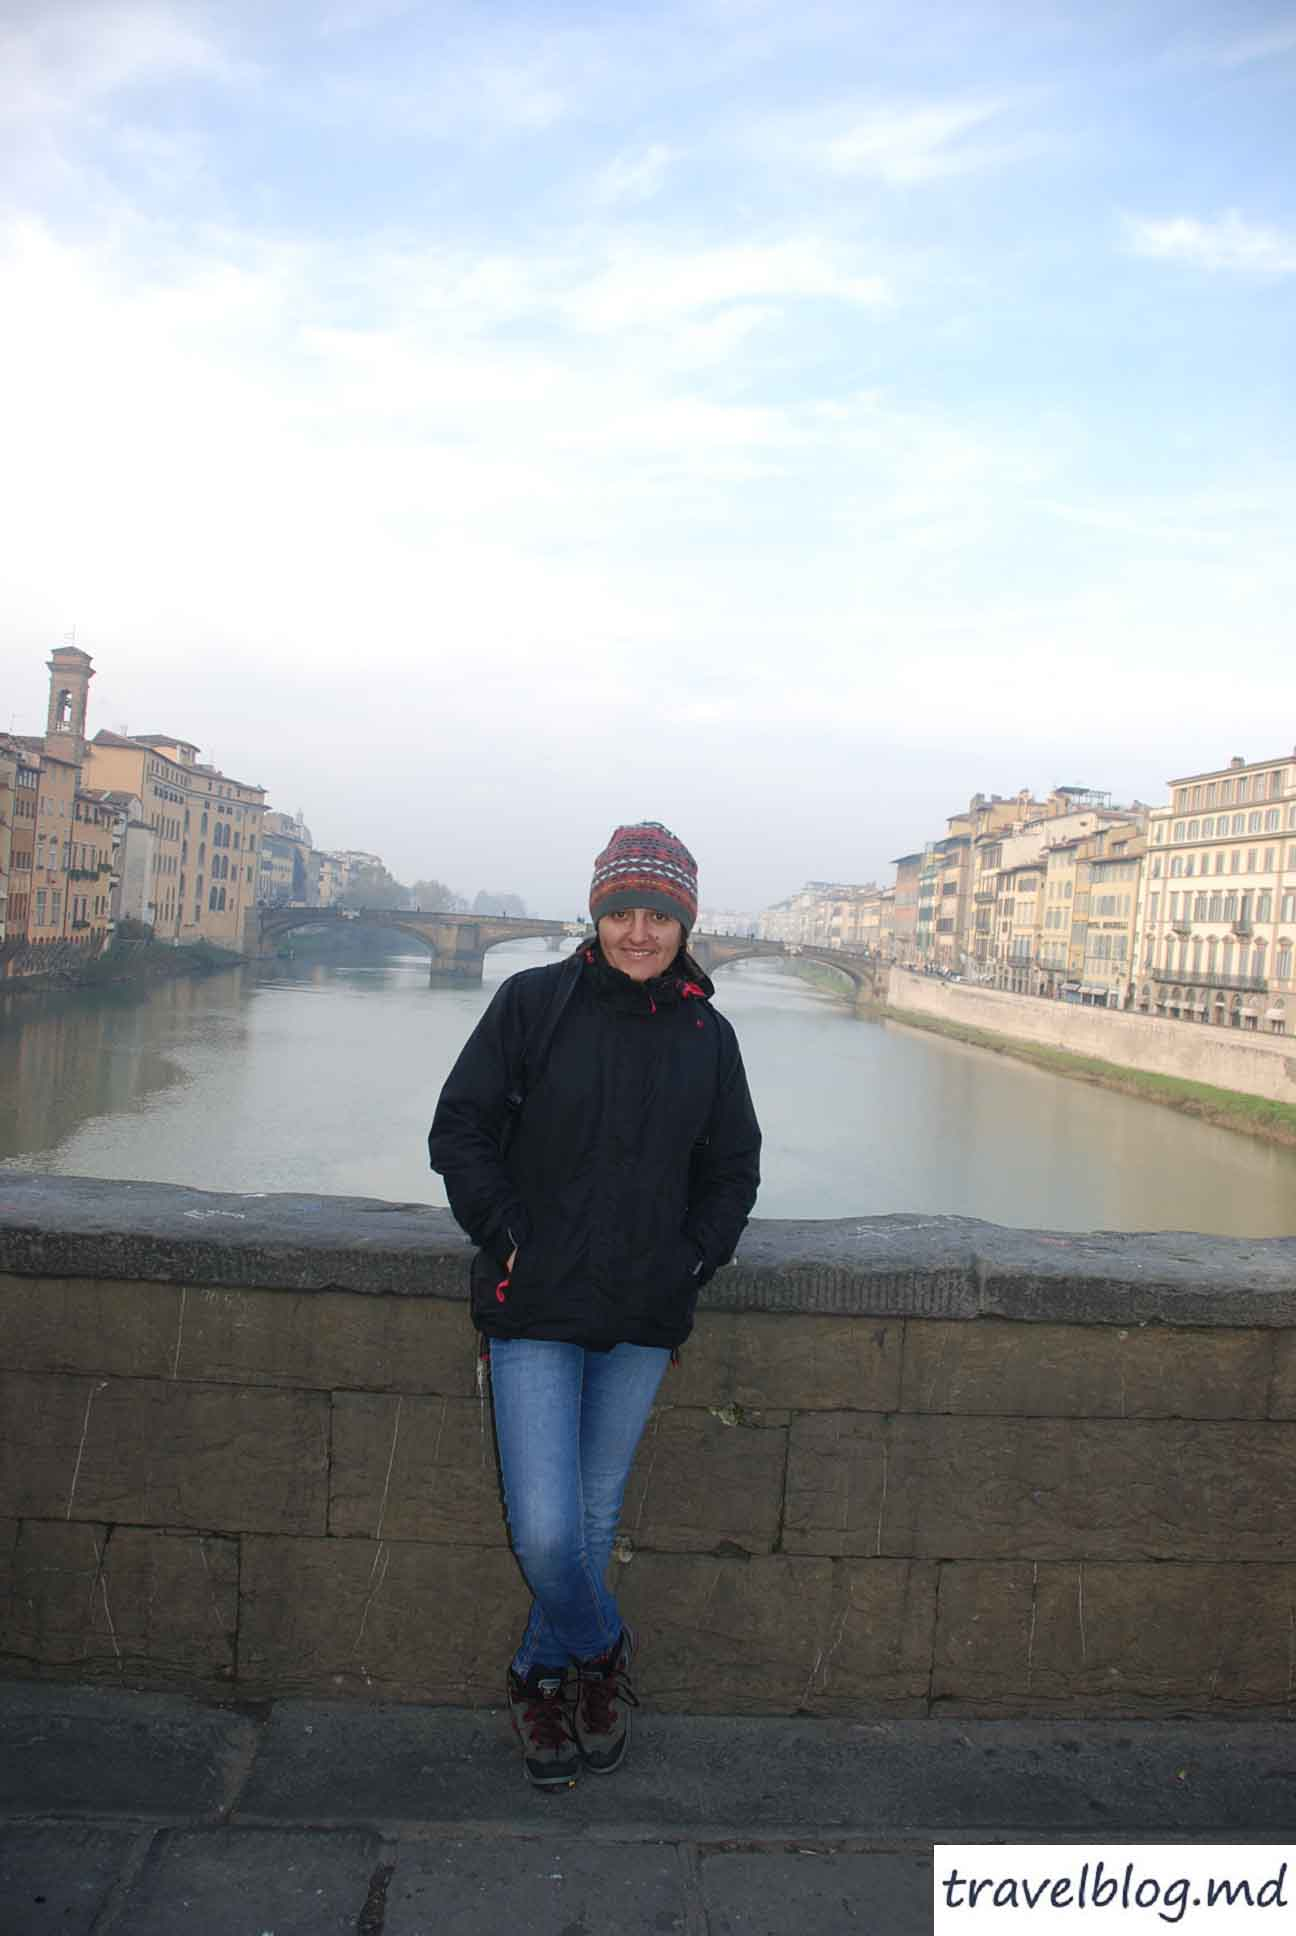 travelblogmdFirenze (9)